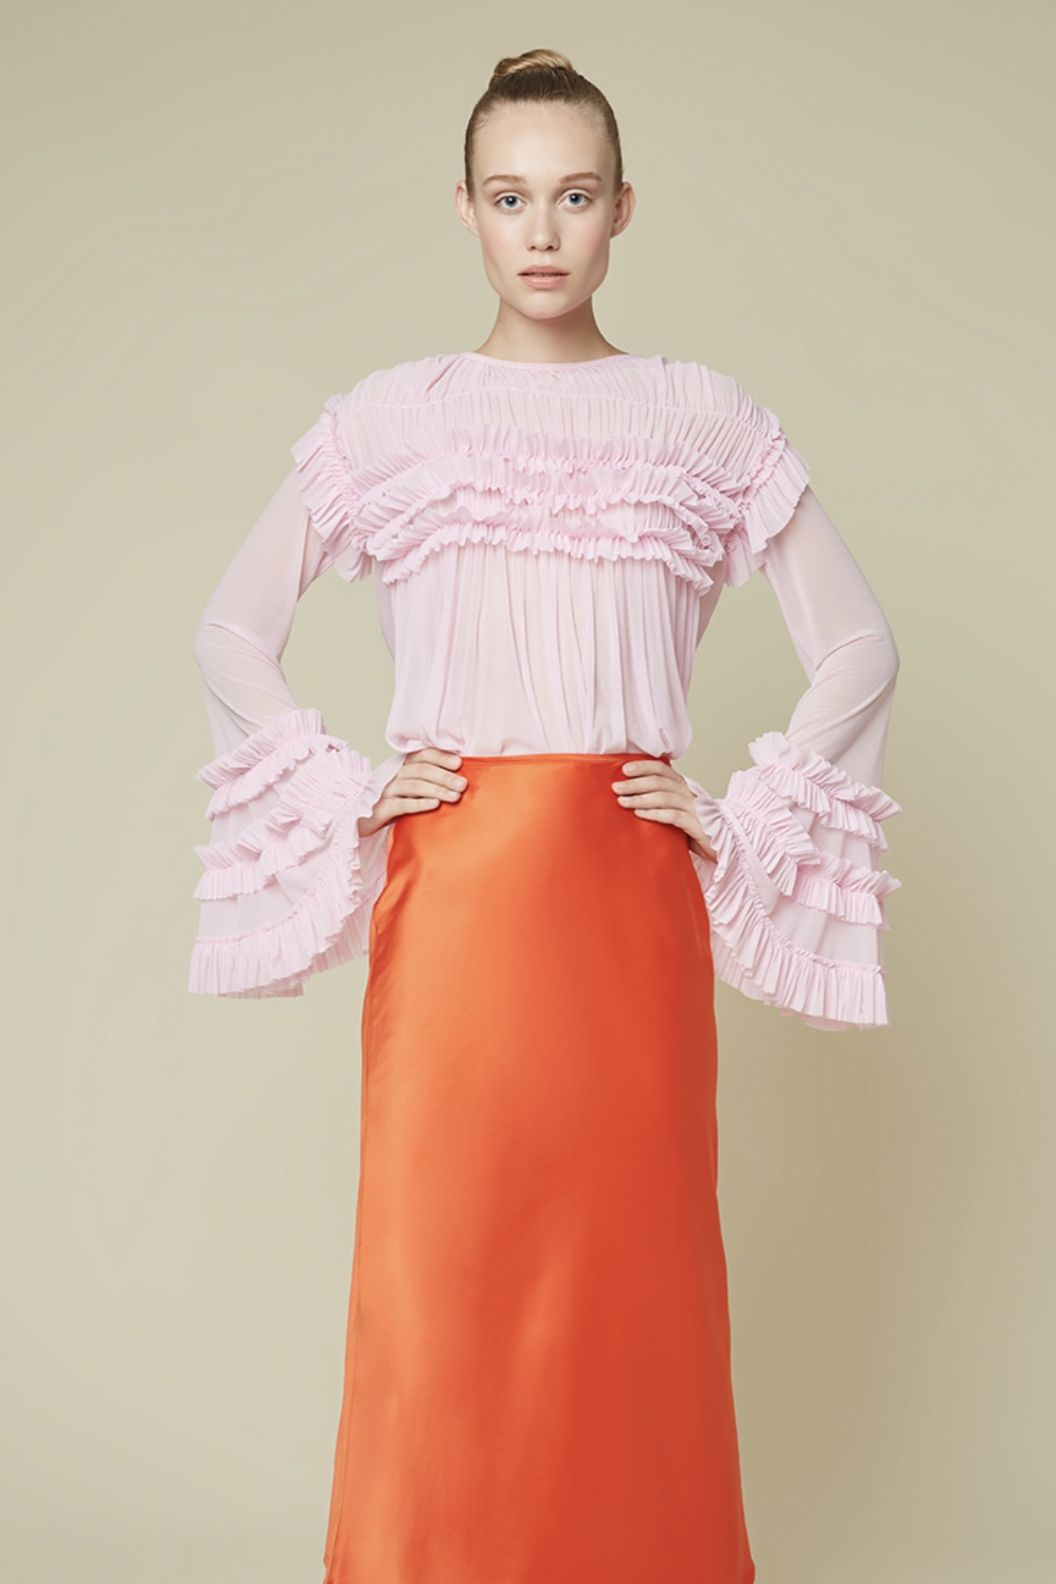 Esthé Full-sleeve ruffle blouse 5 Preview Images